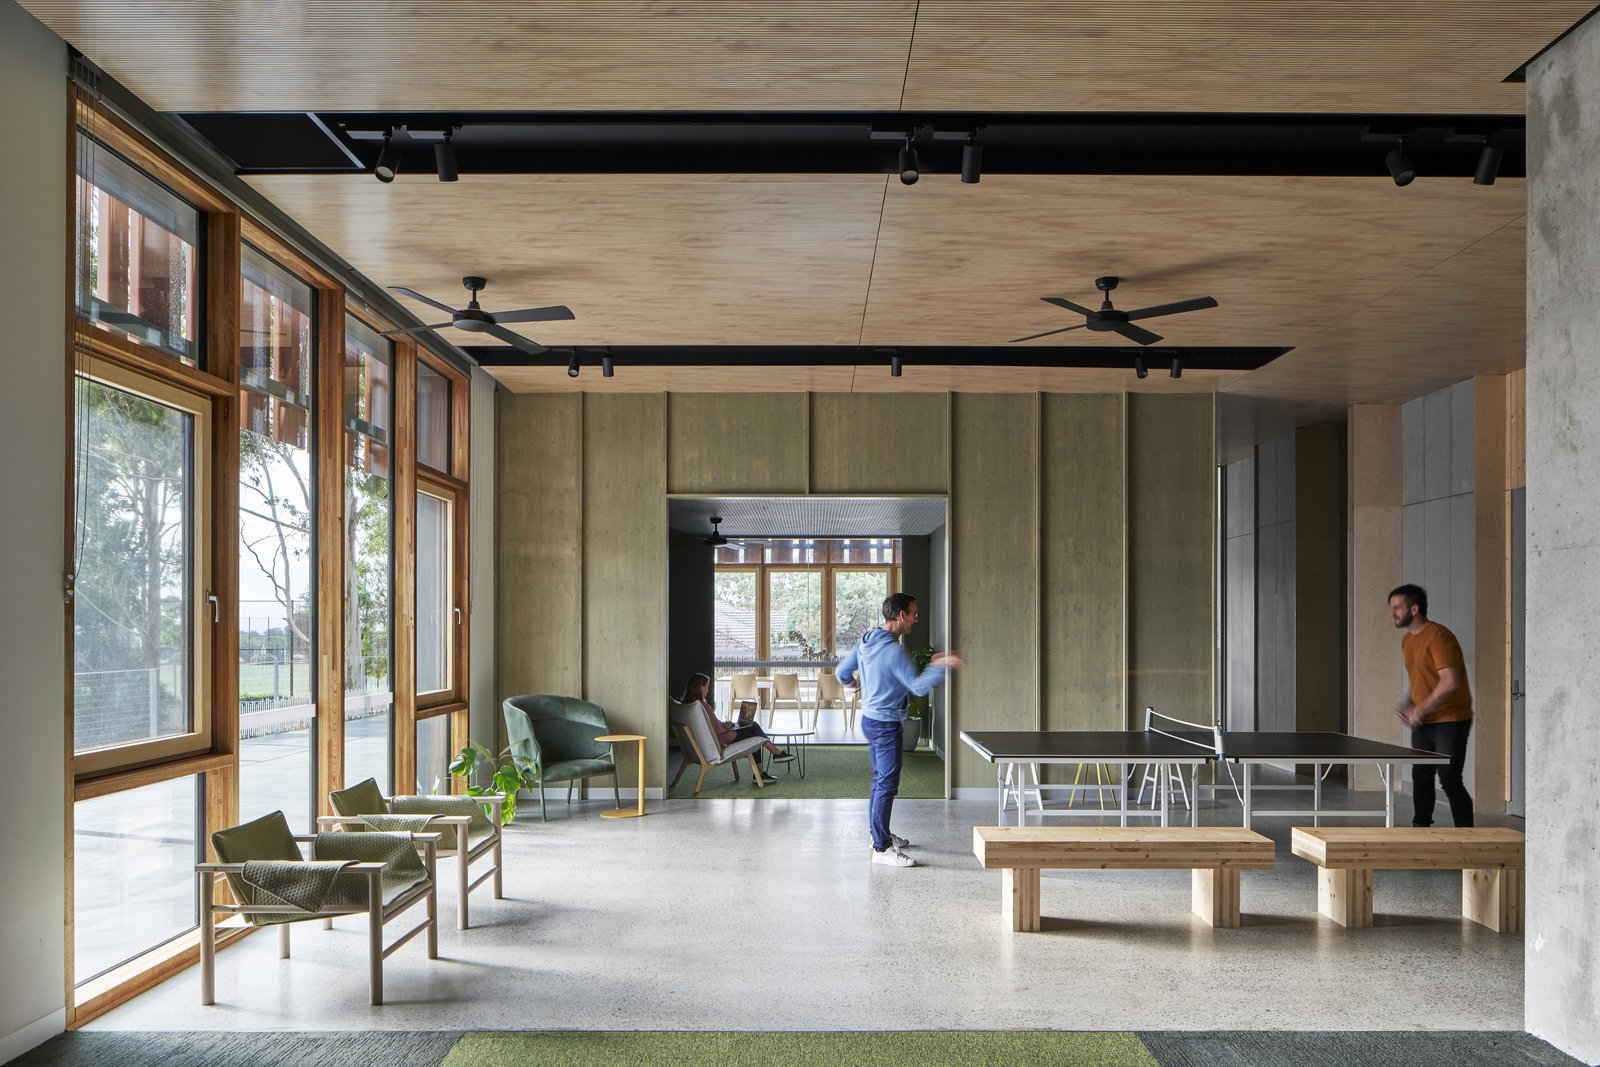 Gillies Hall at Monash University by JCB Architects game room